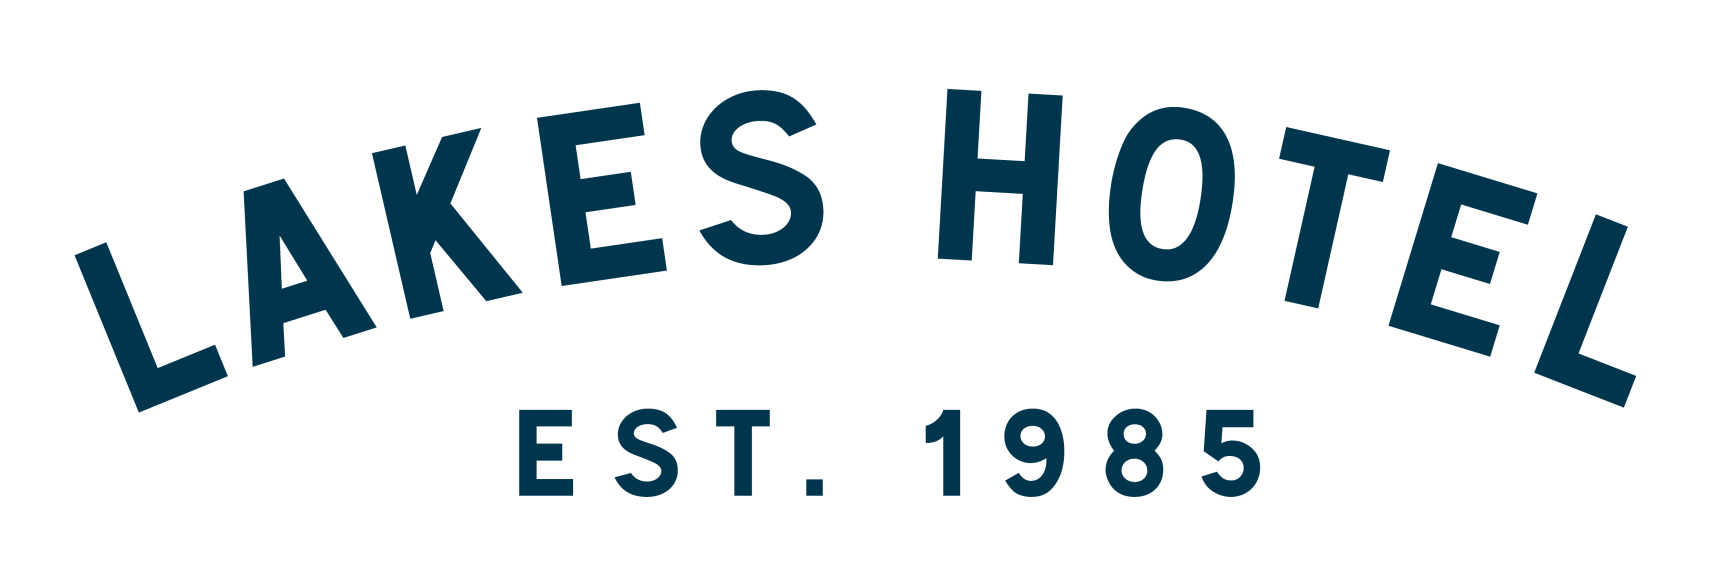 Lakes Hotel logo in blue block letters